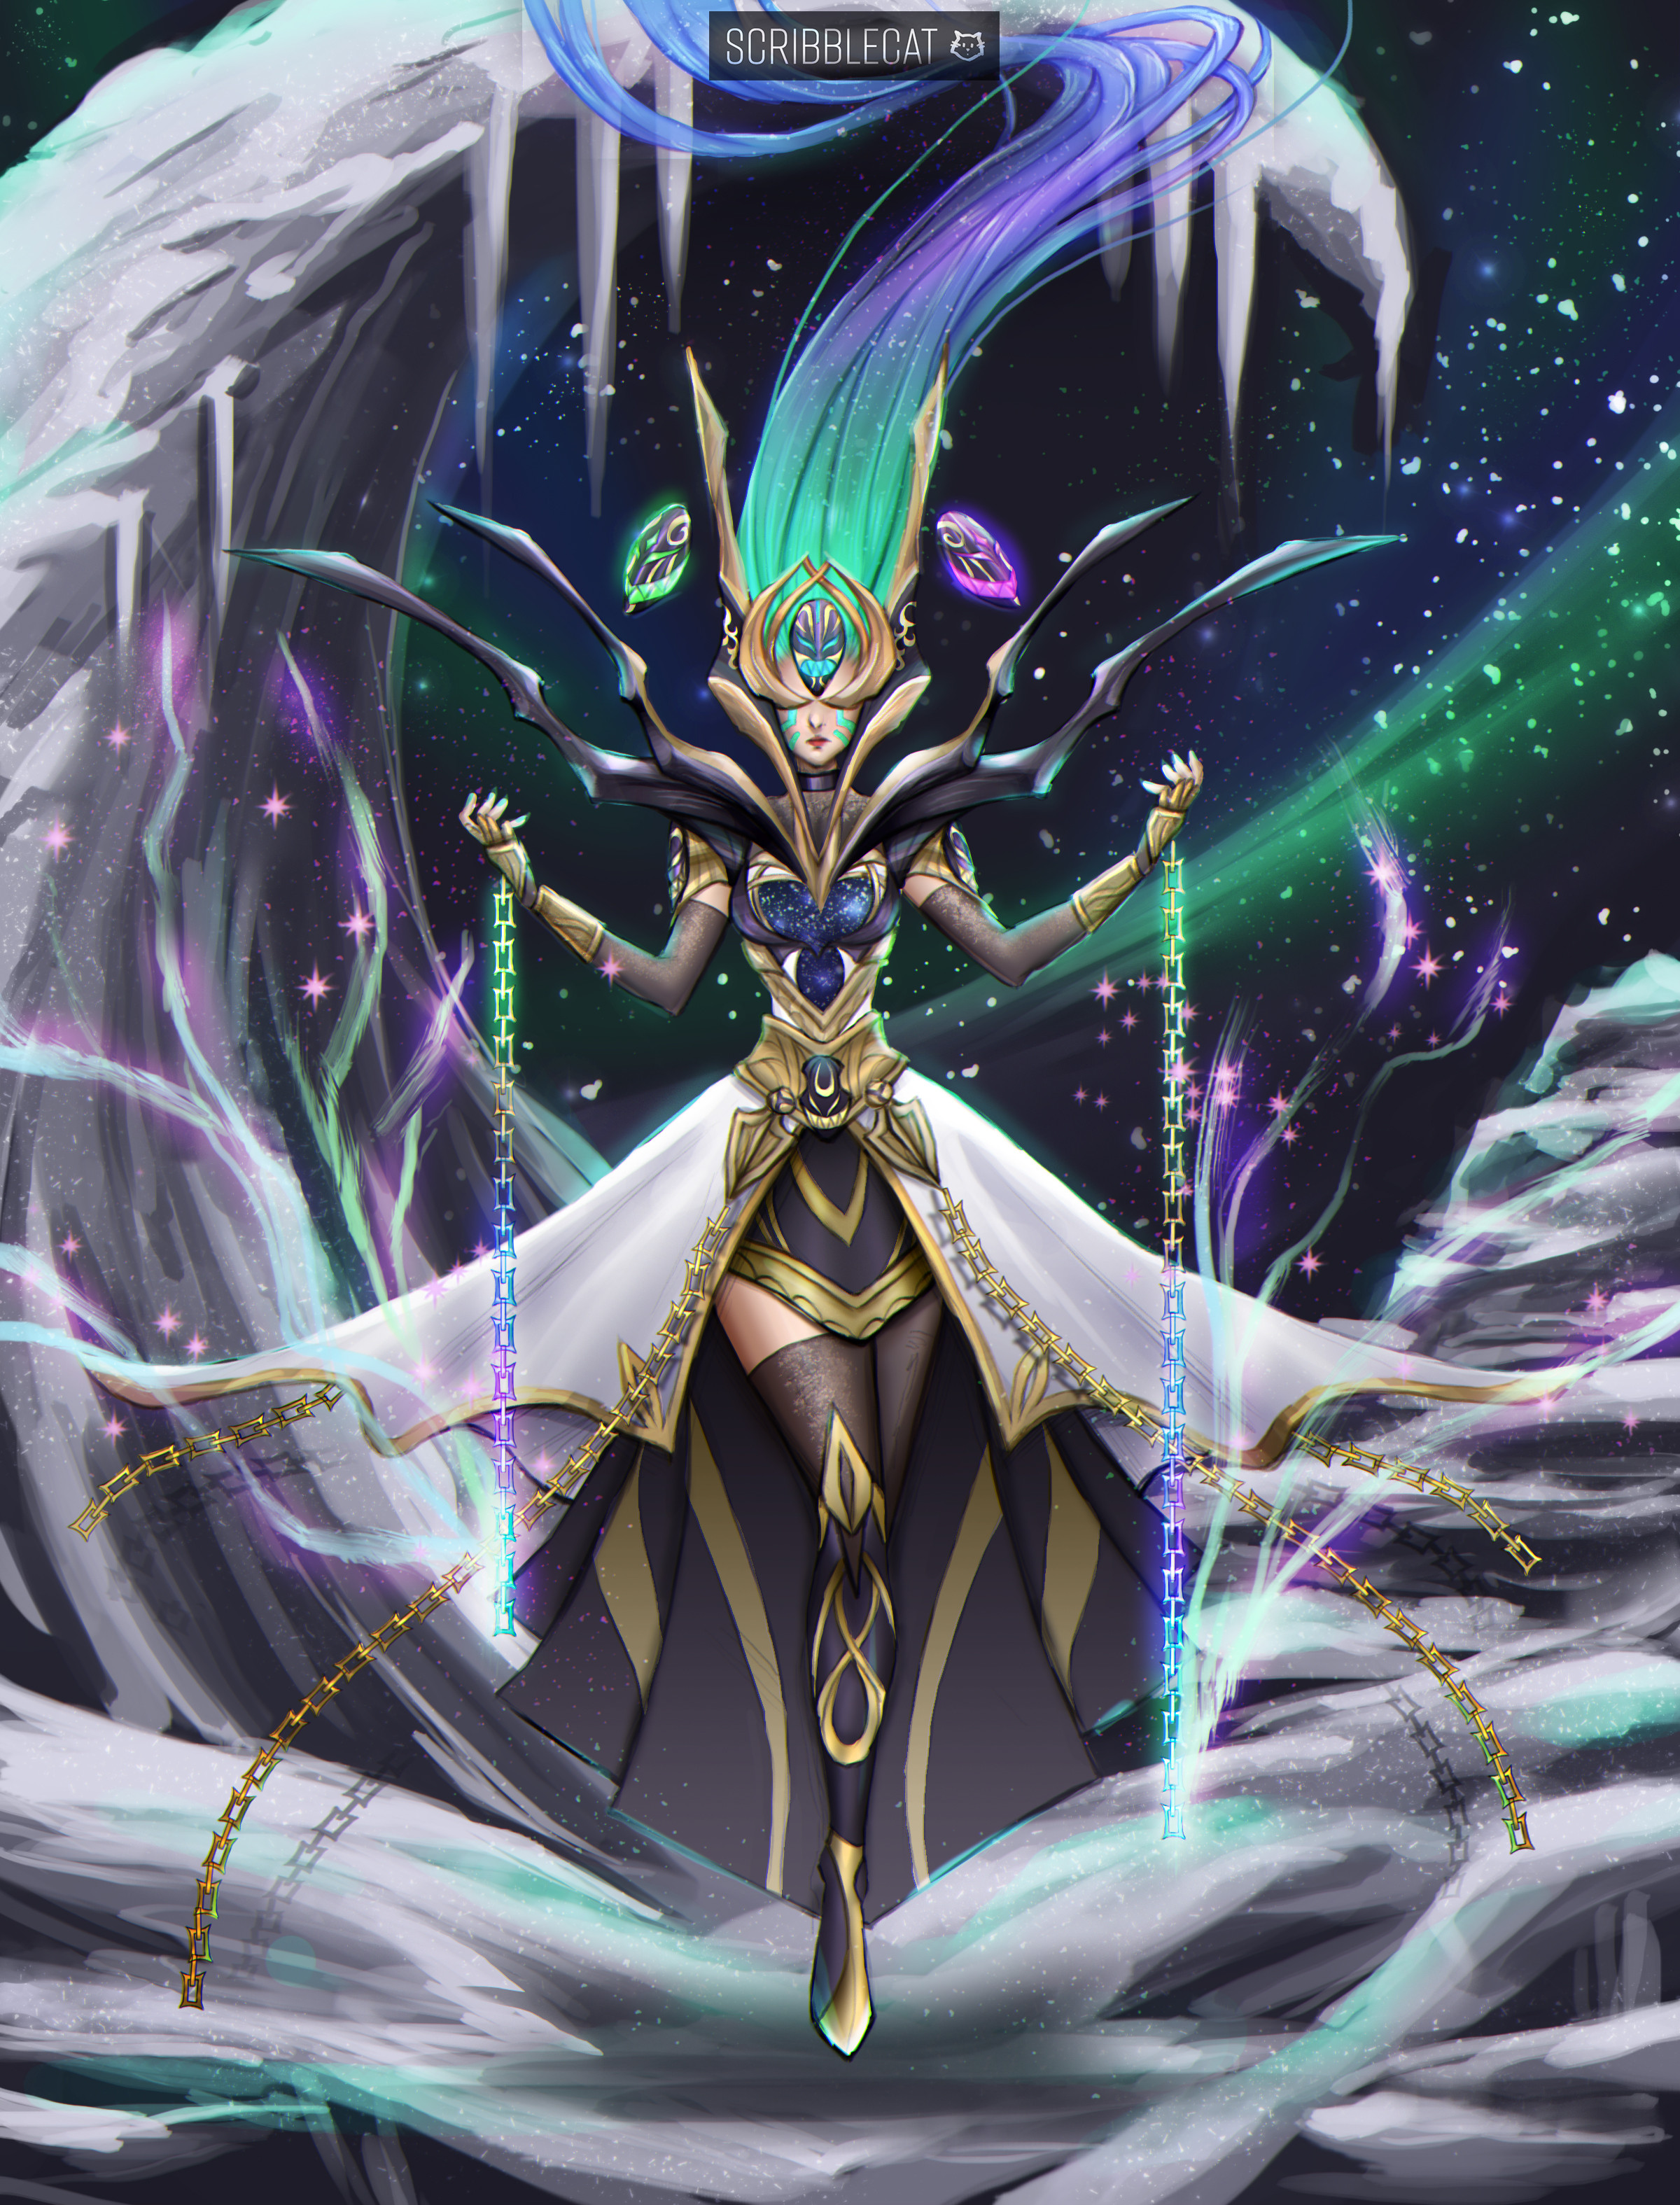 God-Queen Borea [1/3] Banished from the Sky realms and bound to the Northern region of Asgaea, she's an angry goddess who serves to keep dangers out of the North and protect a sacred relic. Helped Iceborn adjust to the North by granting them Frosted Fire